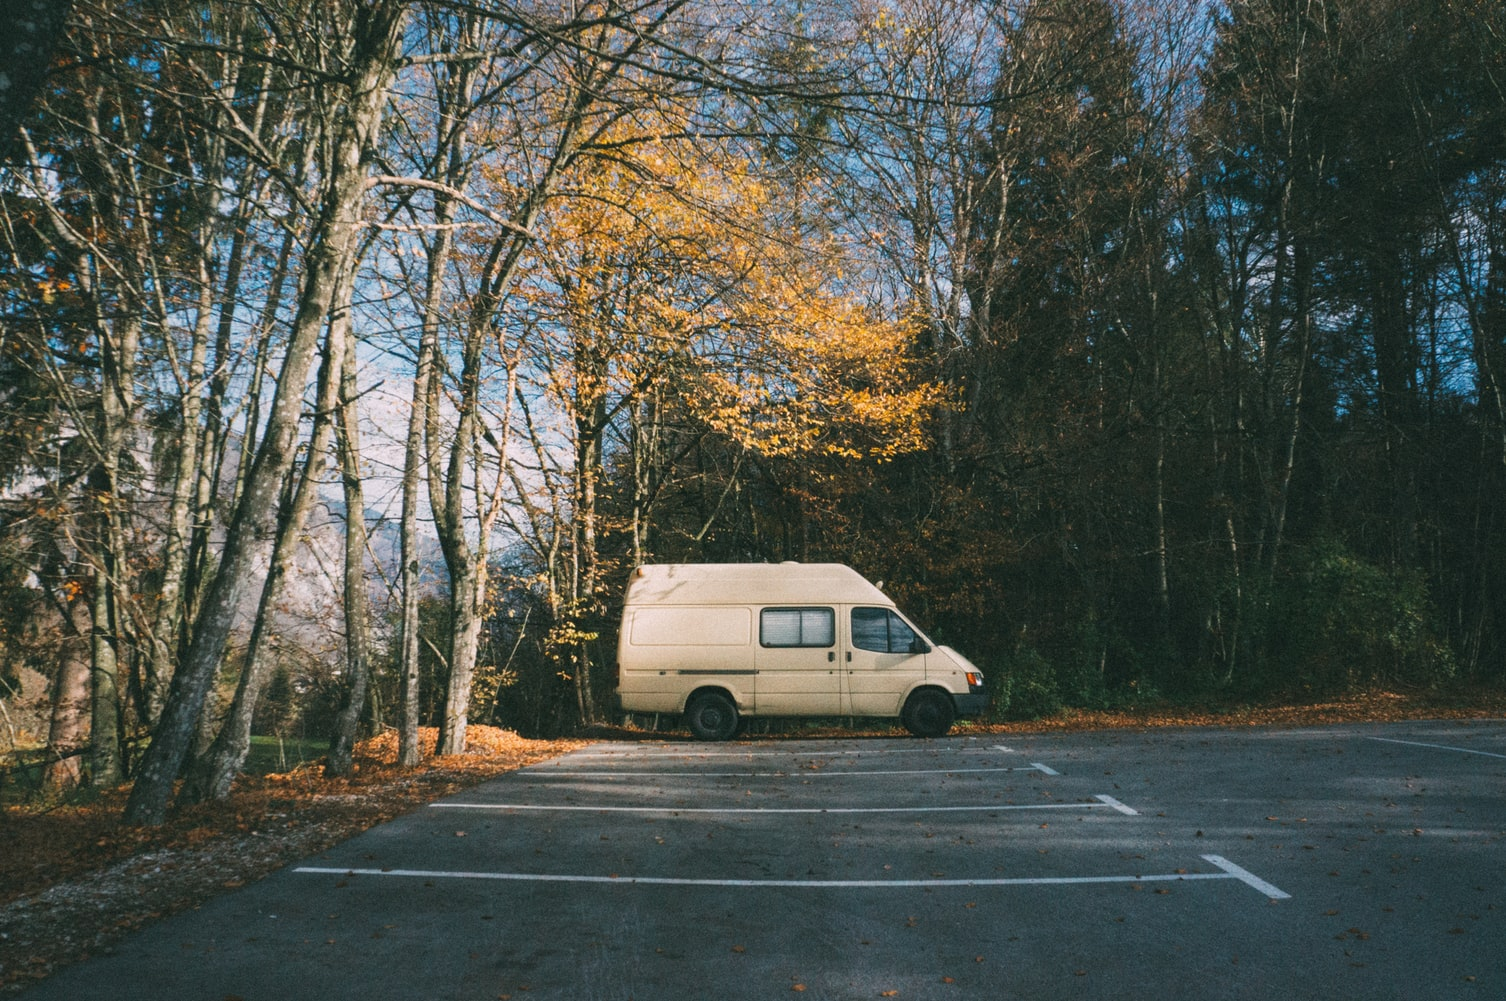 Single camper van parked in an empty parking lot